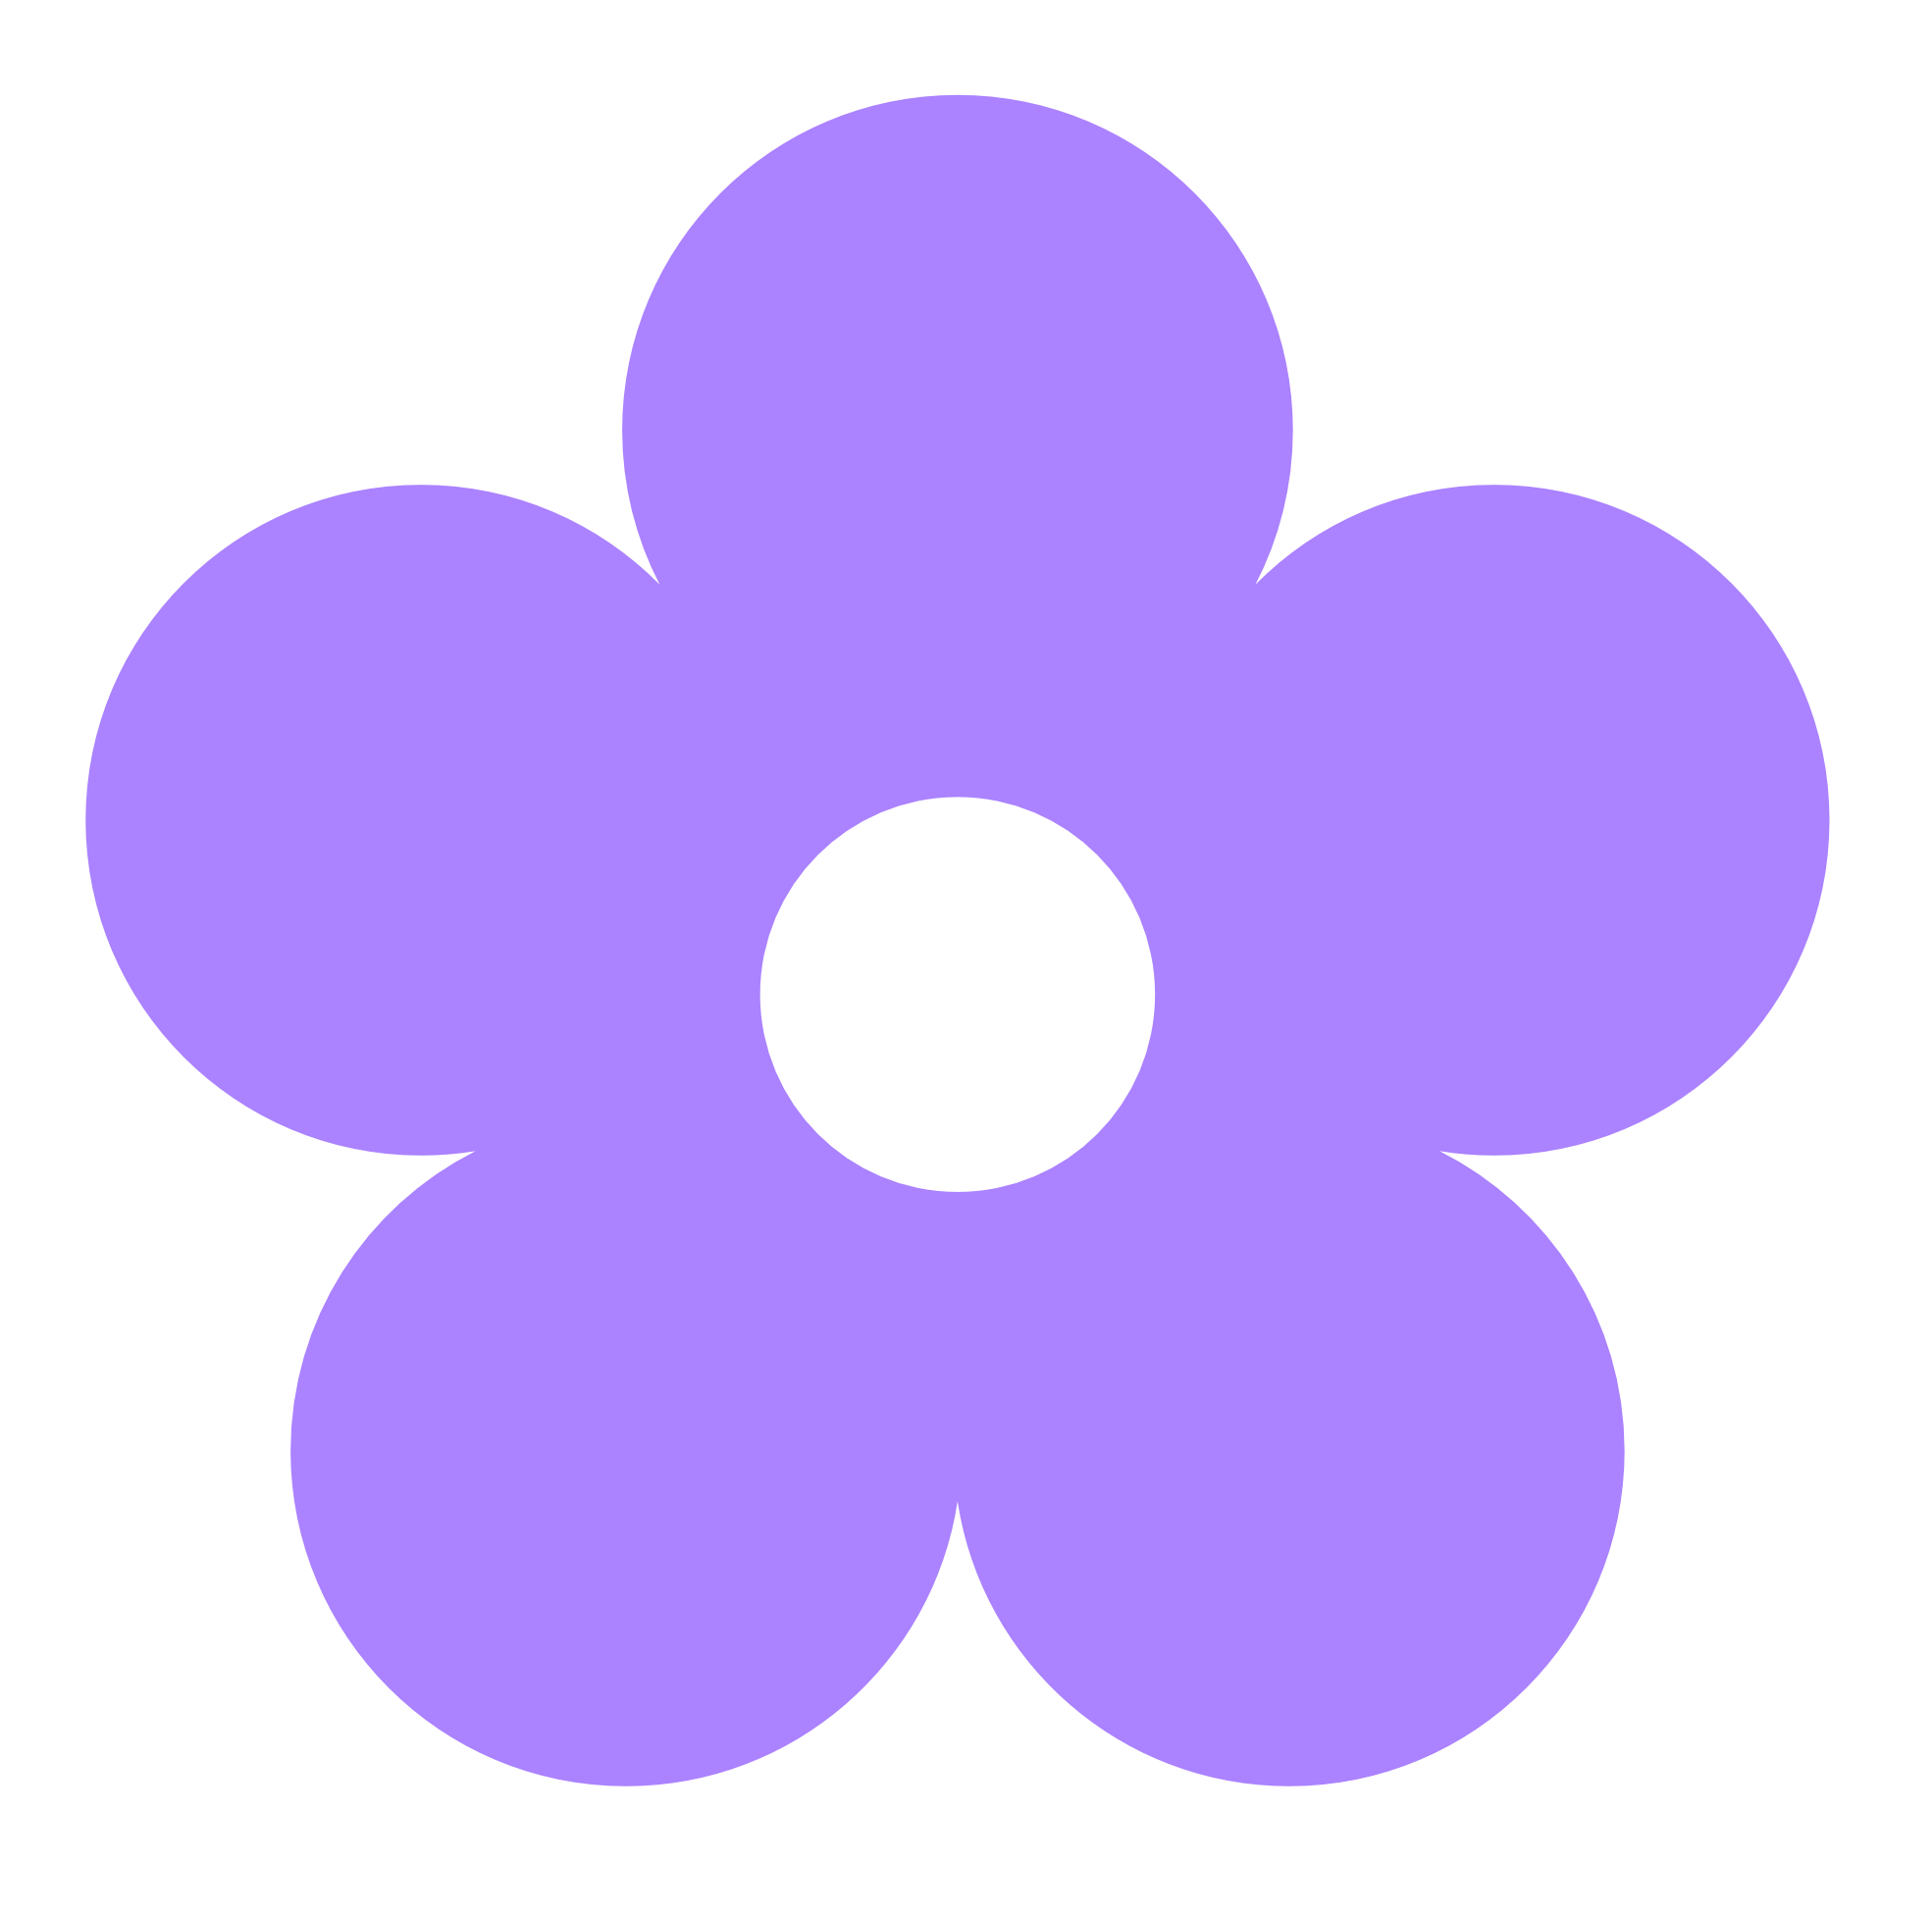 Flower Power Clipart At Getdrawings Free For Personal Use